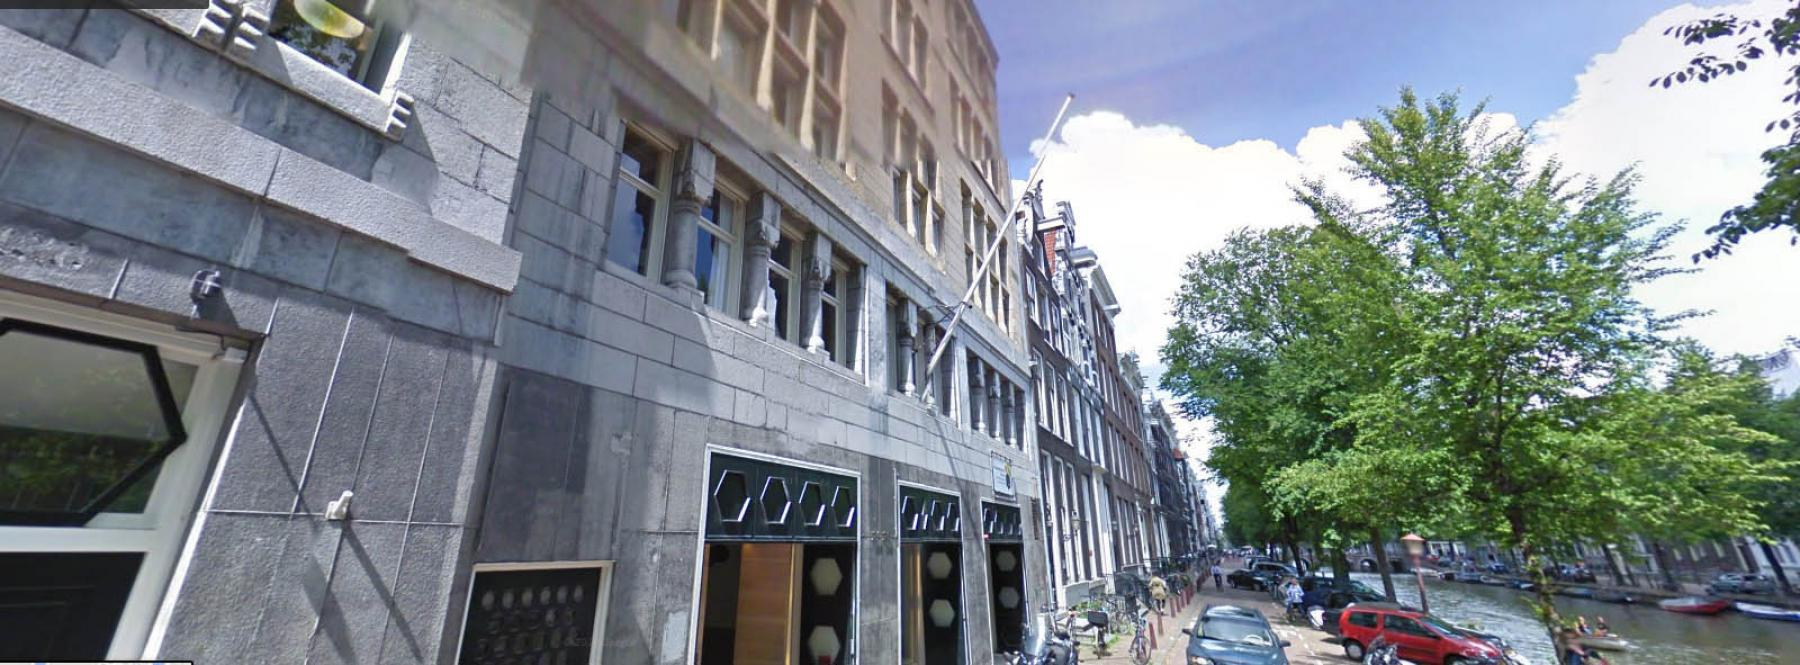 Rent office space Herengracht 124-128, Amsterdam (21)